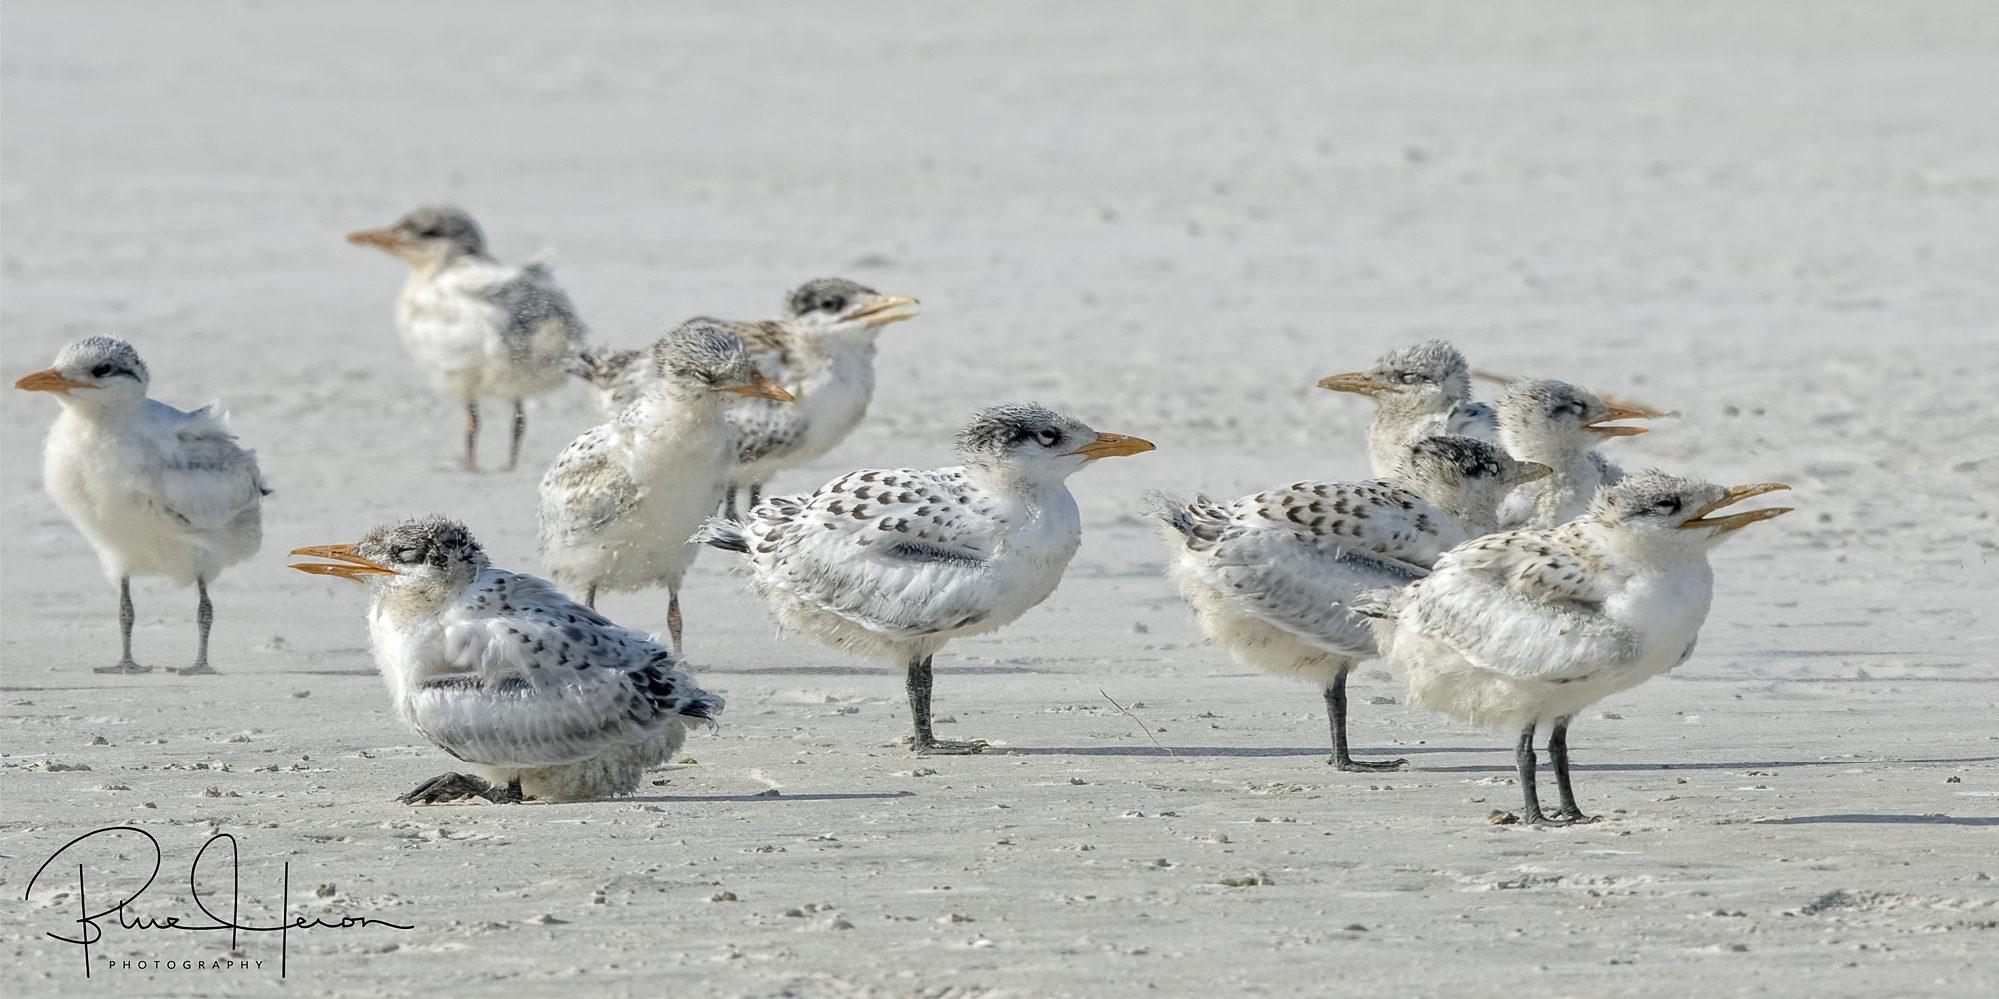 It is summertime and the beach is full of chicks...Royal Tern Chicks that is